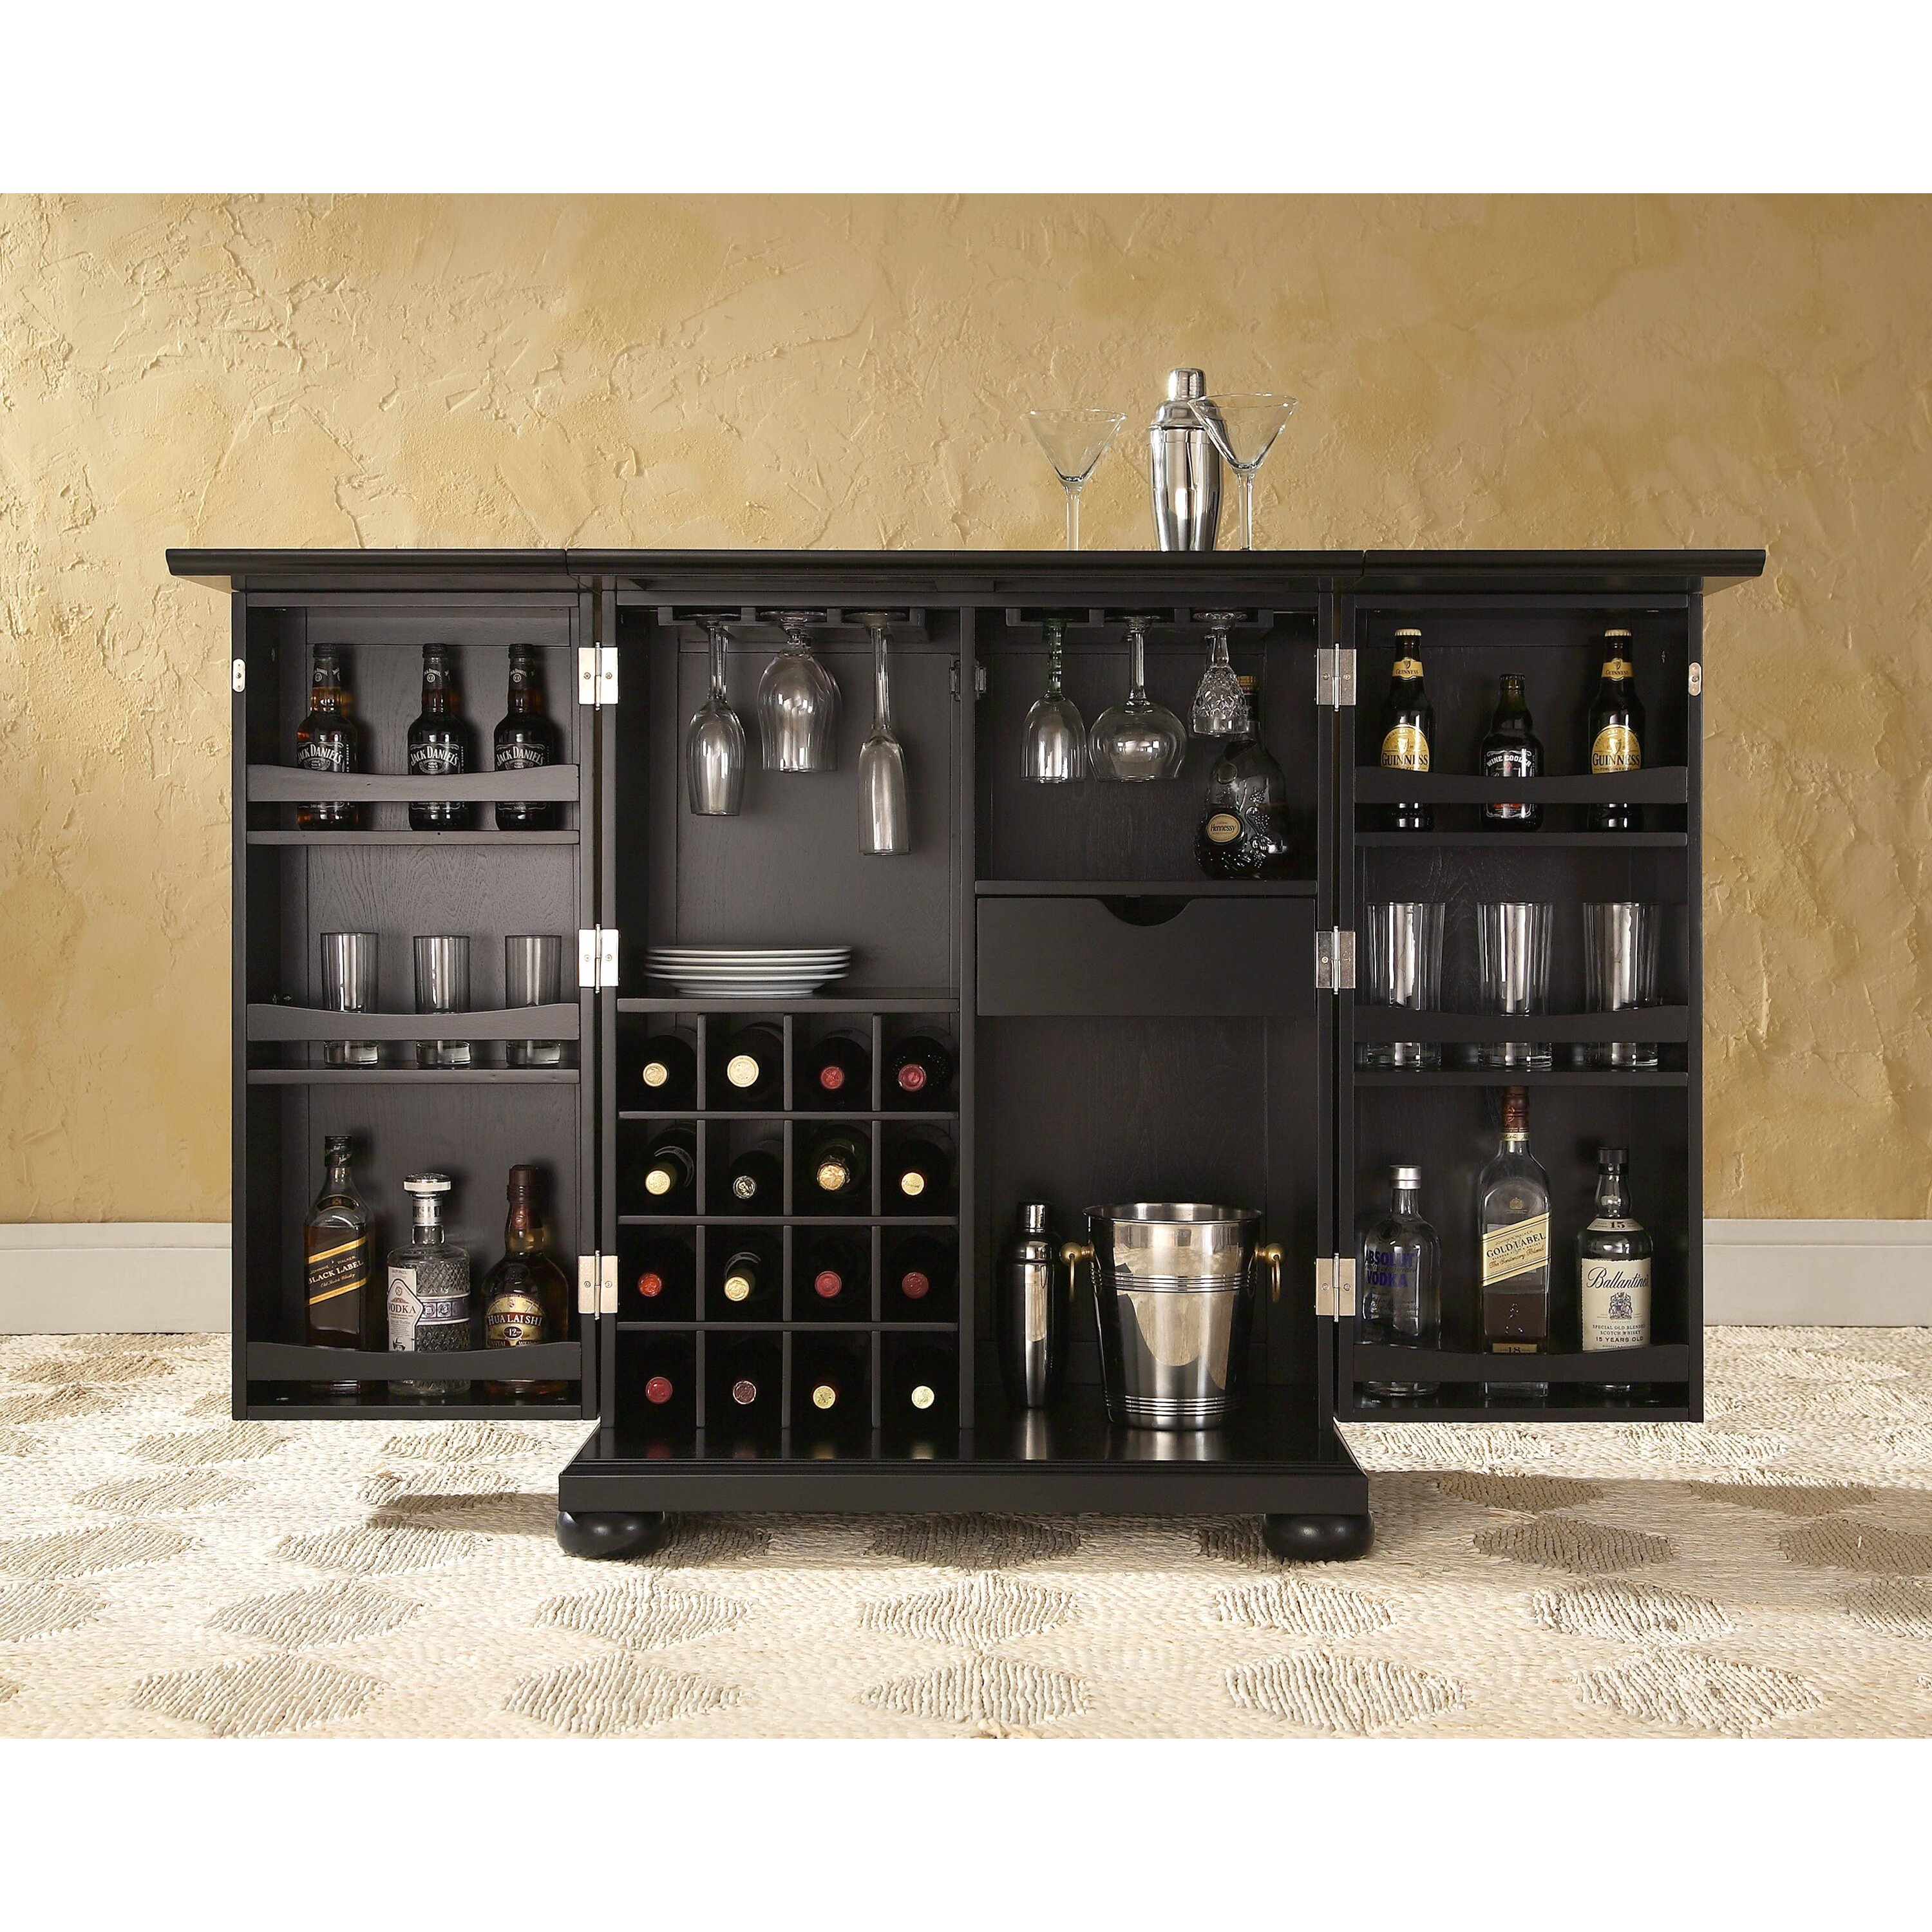 Darby Home Co Pottstown Expandable Bar Cabinet with Wine Storage & Reviews | Wayfair